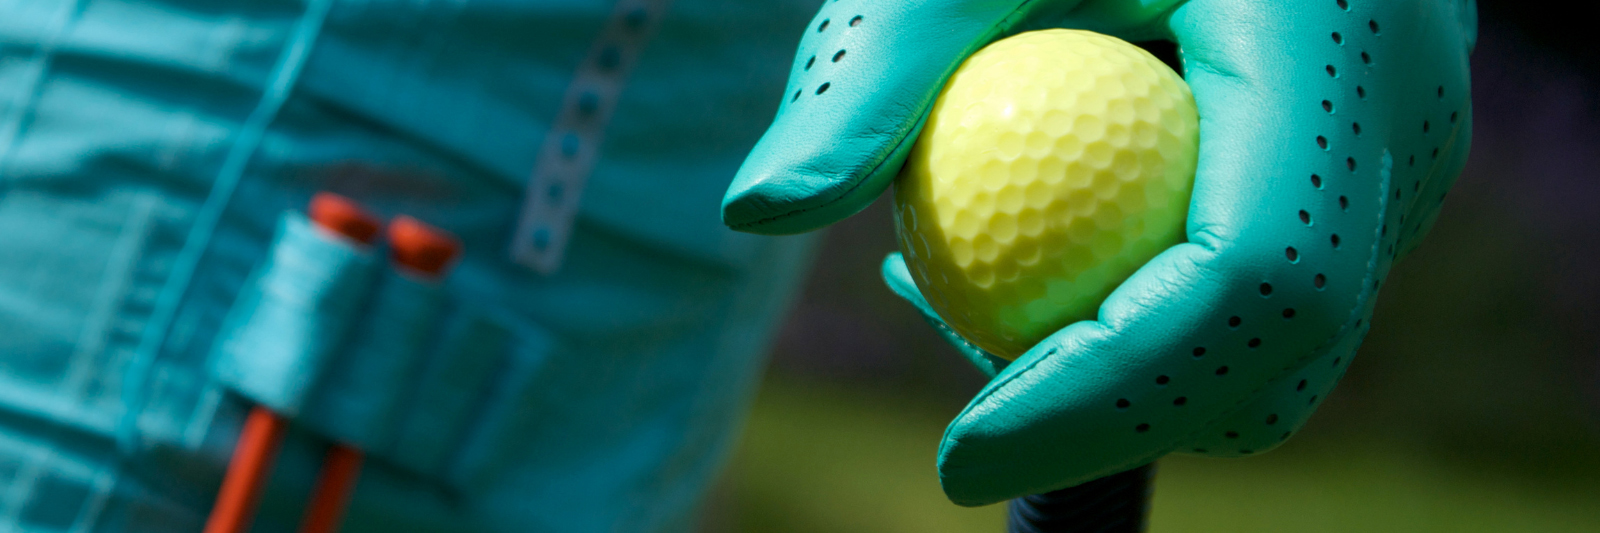 An up close image of a gloved hand placing a golf ball on top of a tee